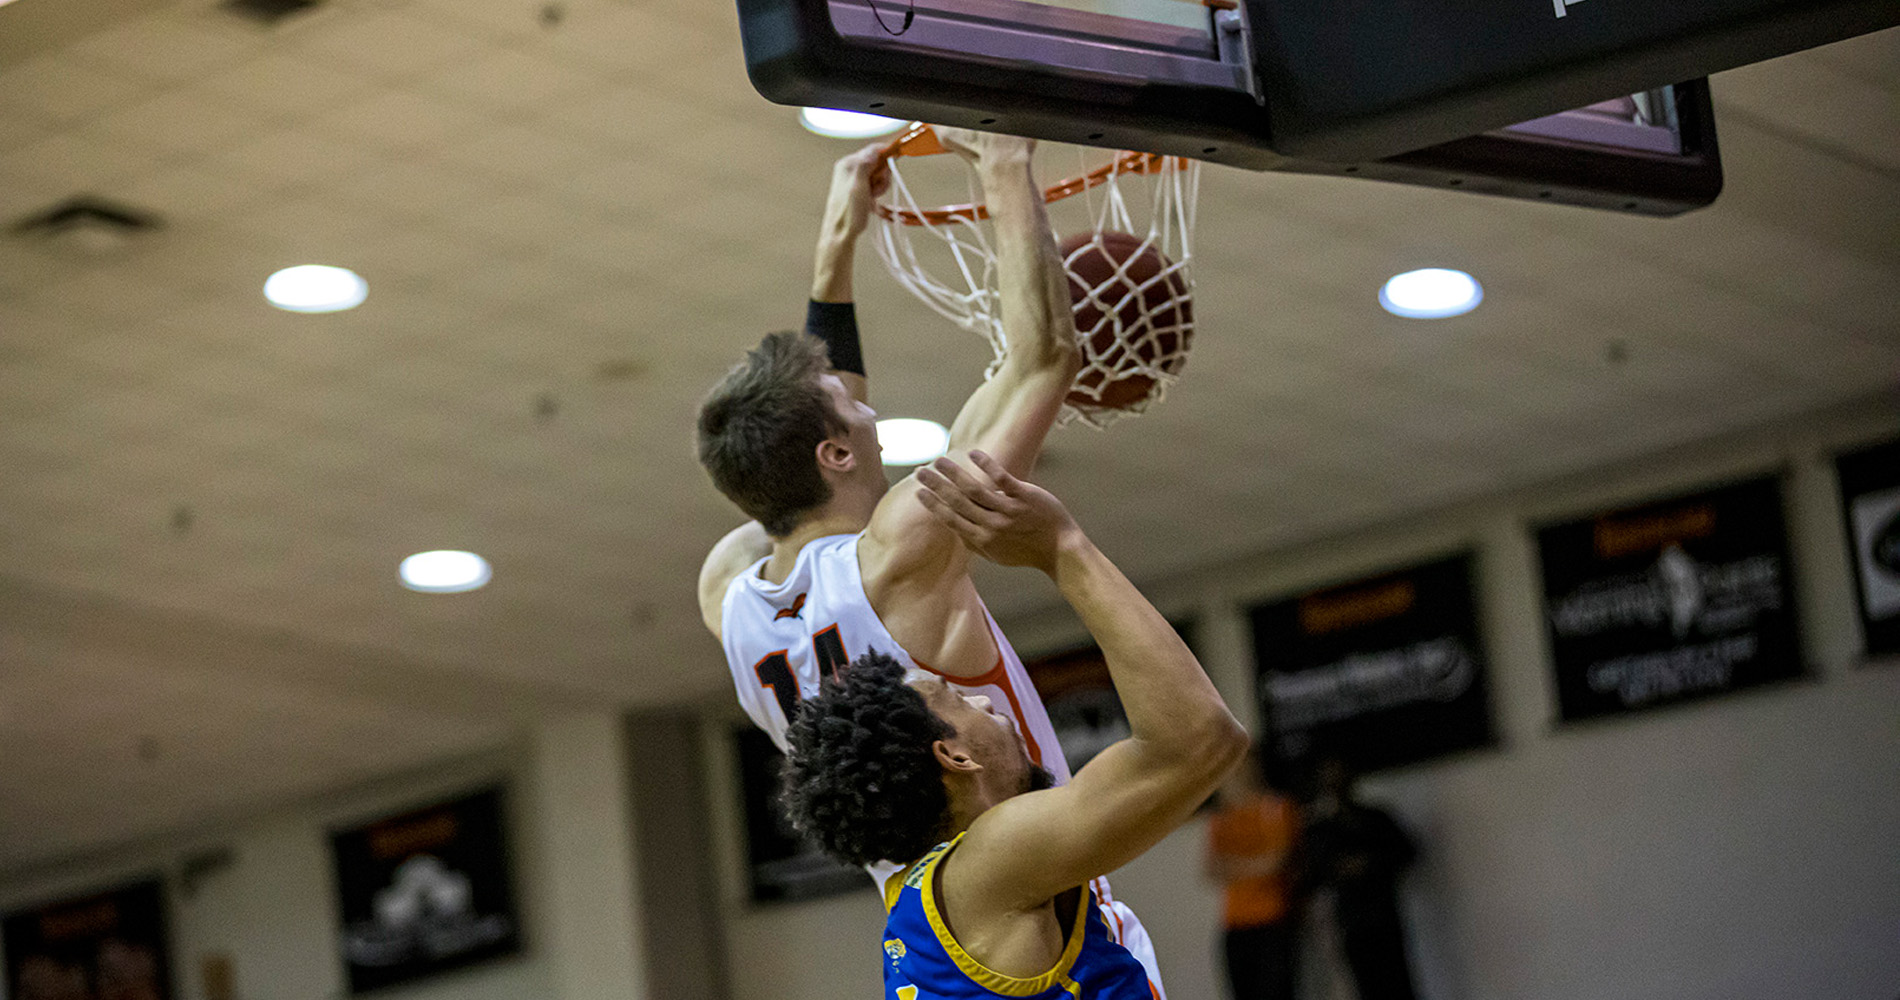 Caleb Hodnett slams this dunk home in Tusculum's 80-66 home win over Mars Hill (photo by Chuck Williams)